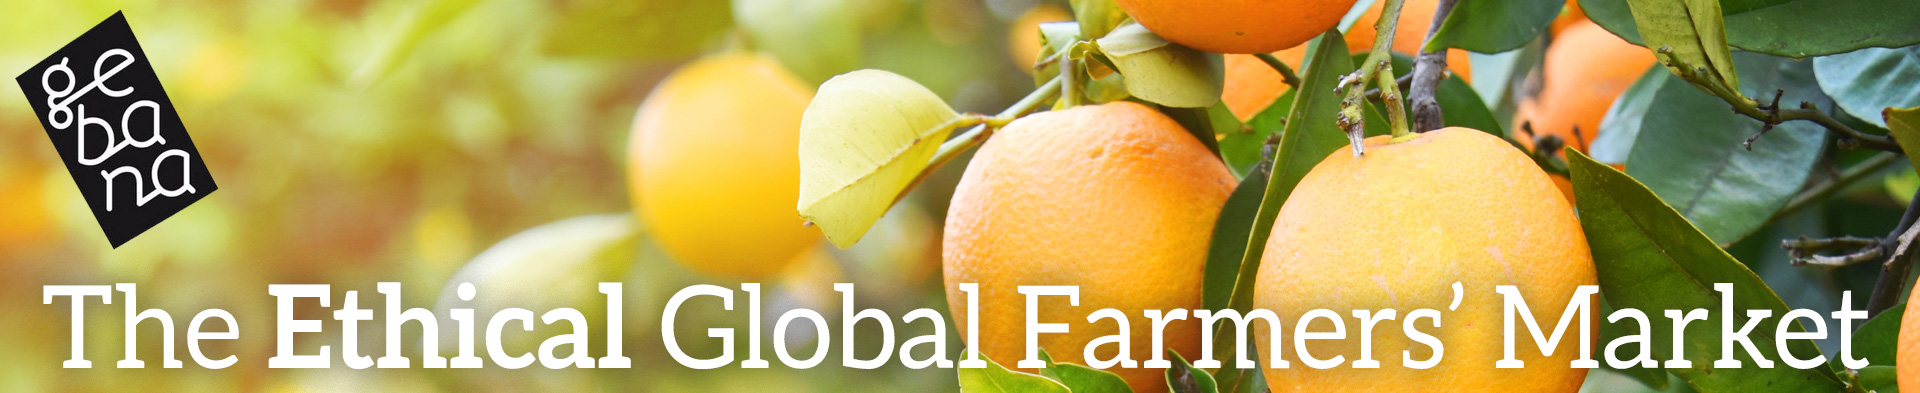 The ethical Global Farmers Market